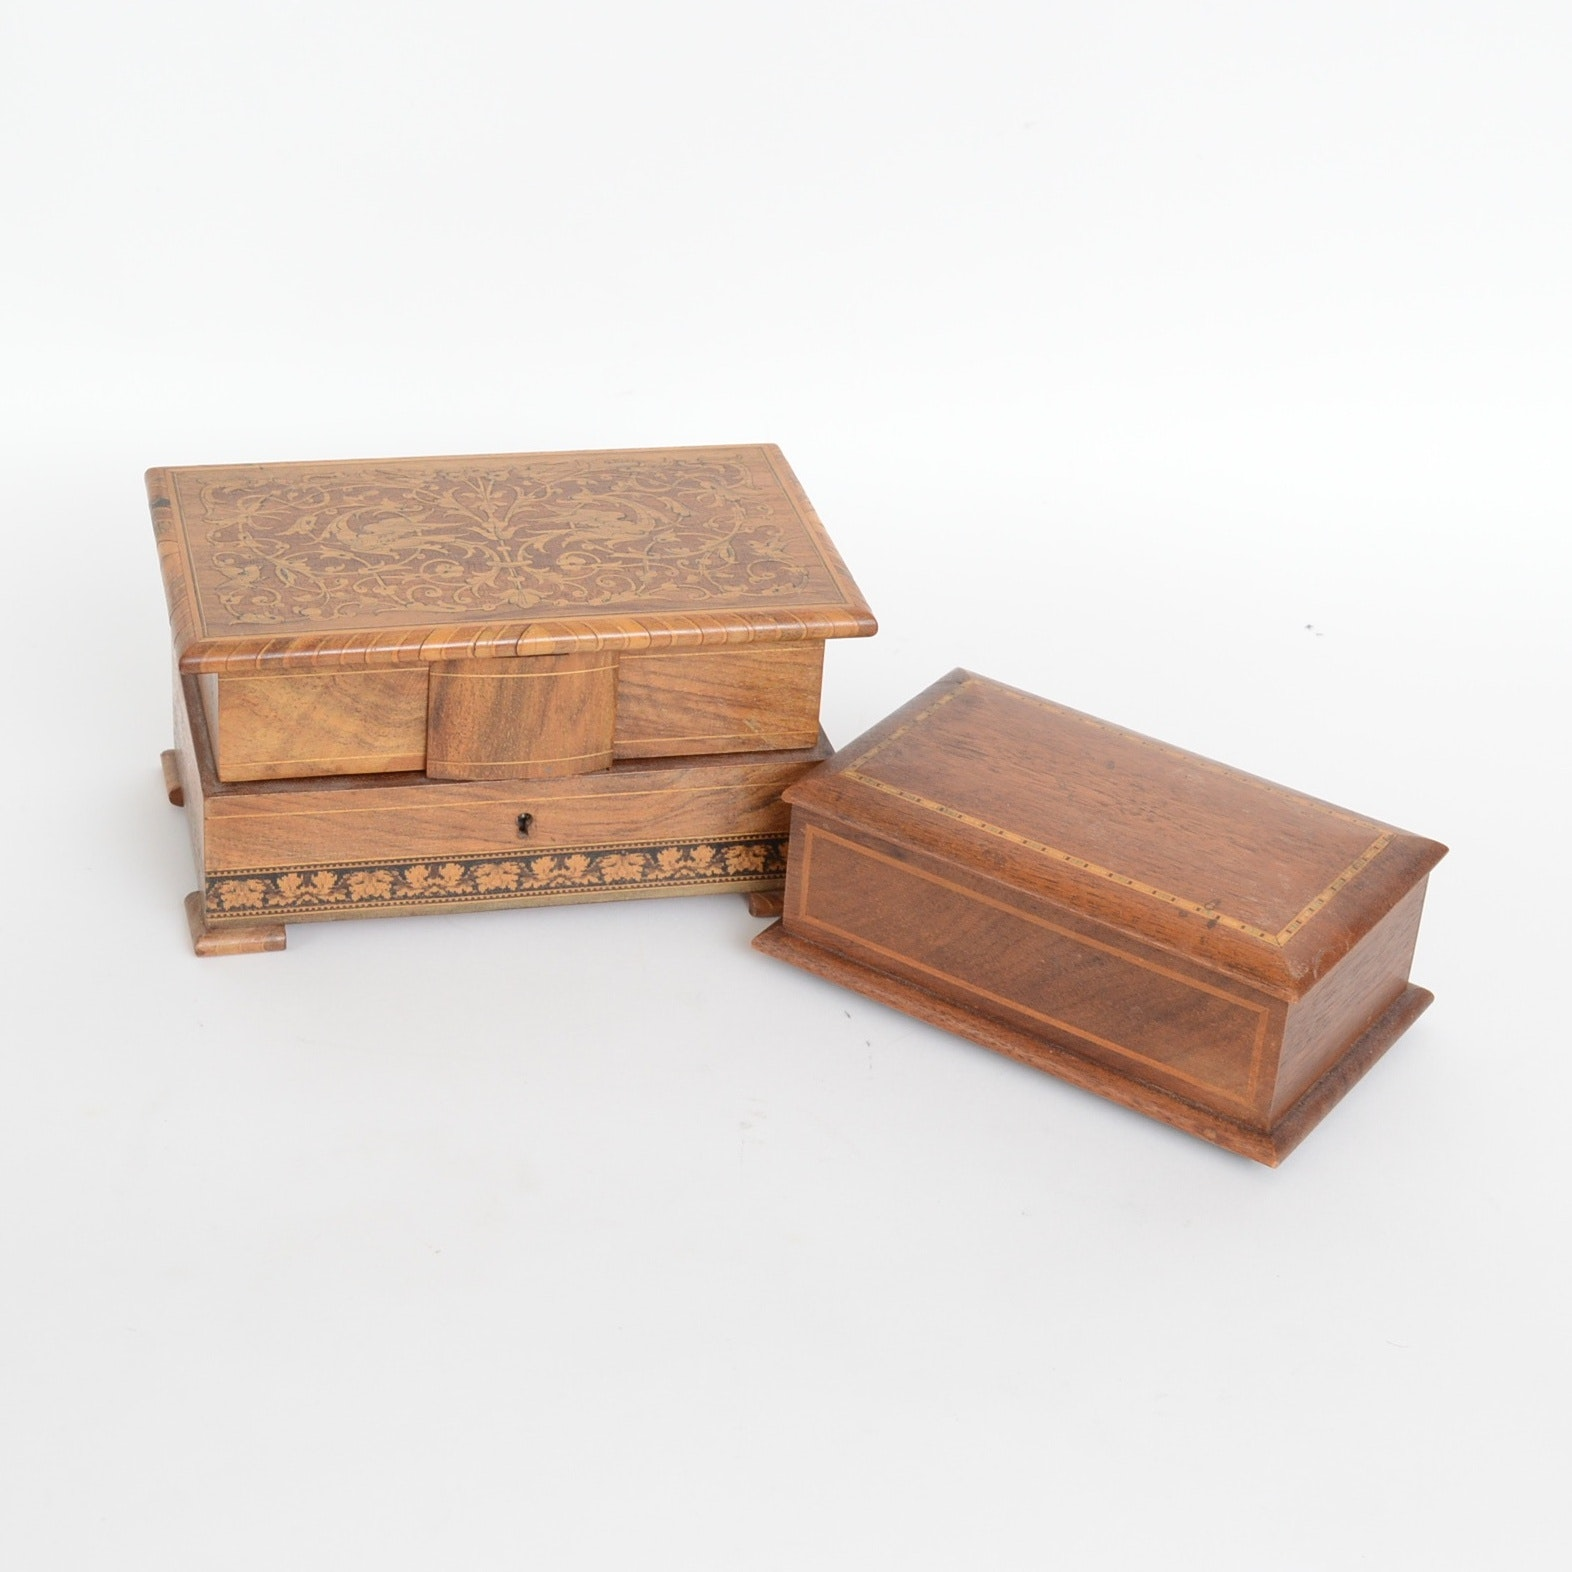 Pair of Wooden Jewelry Boxes